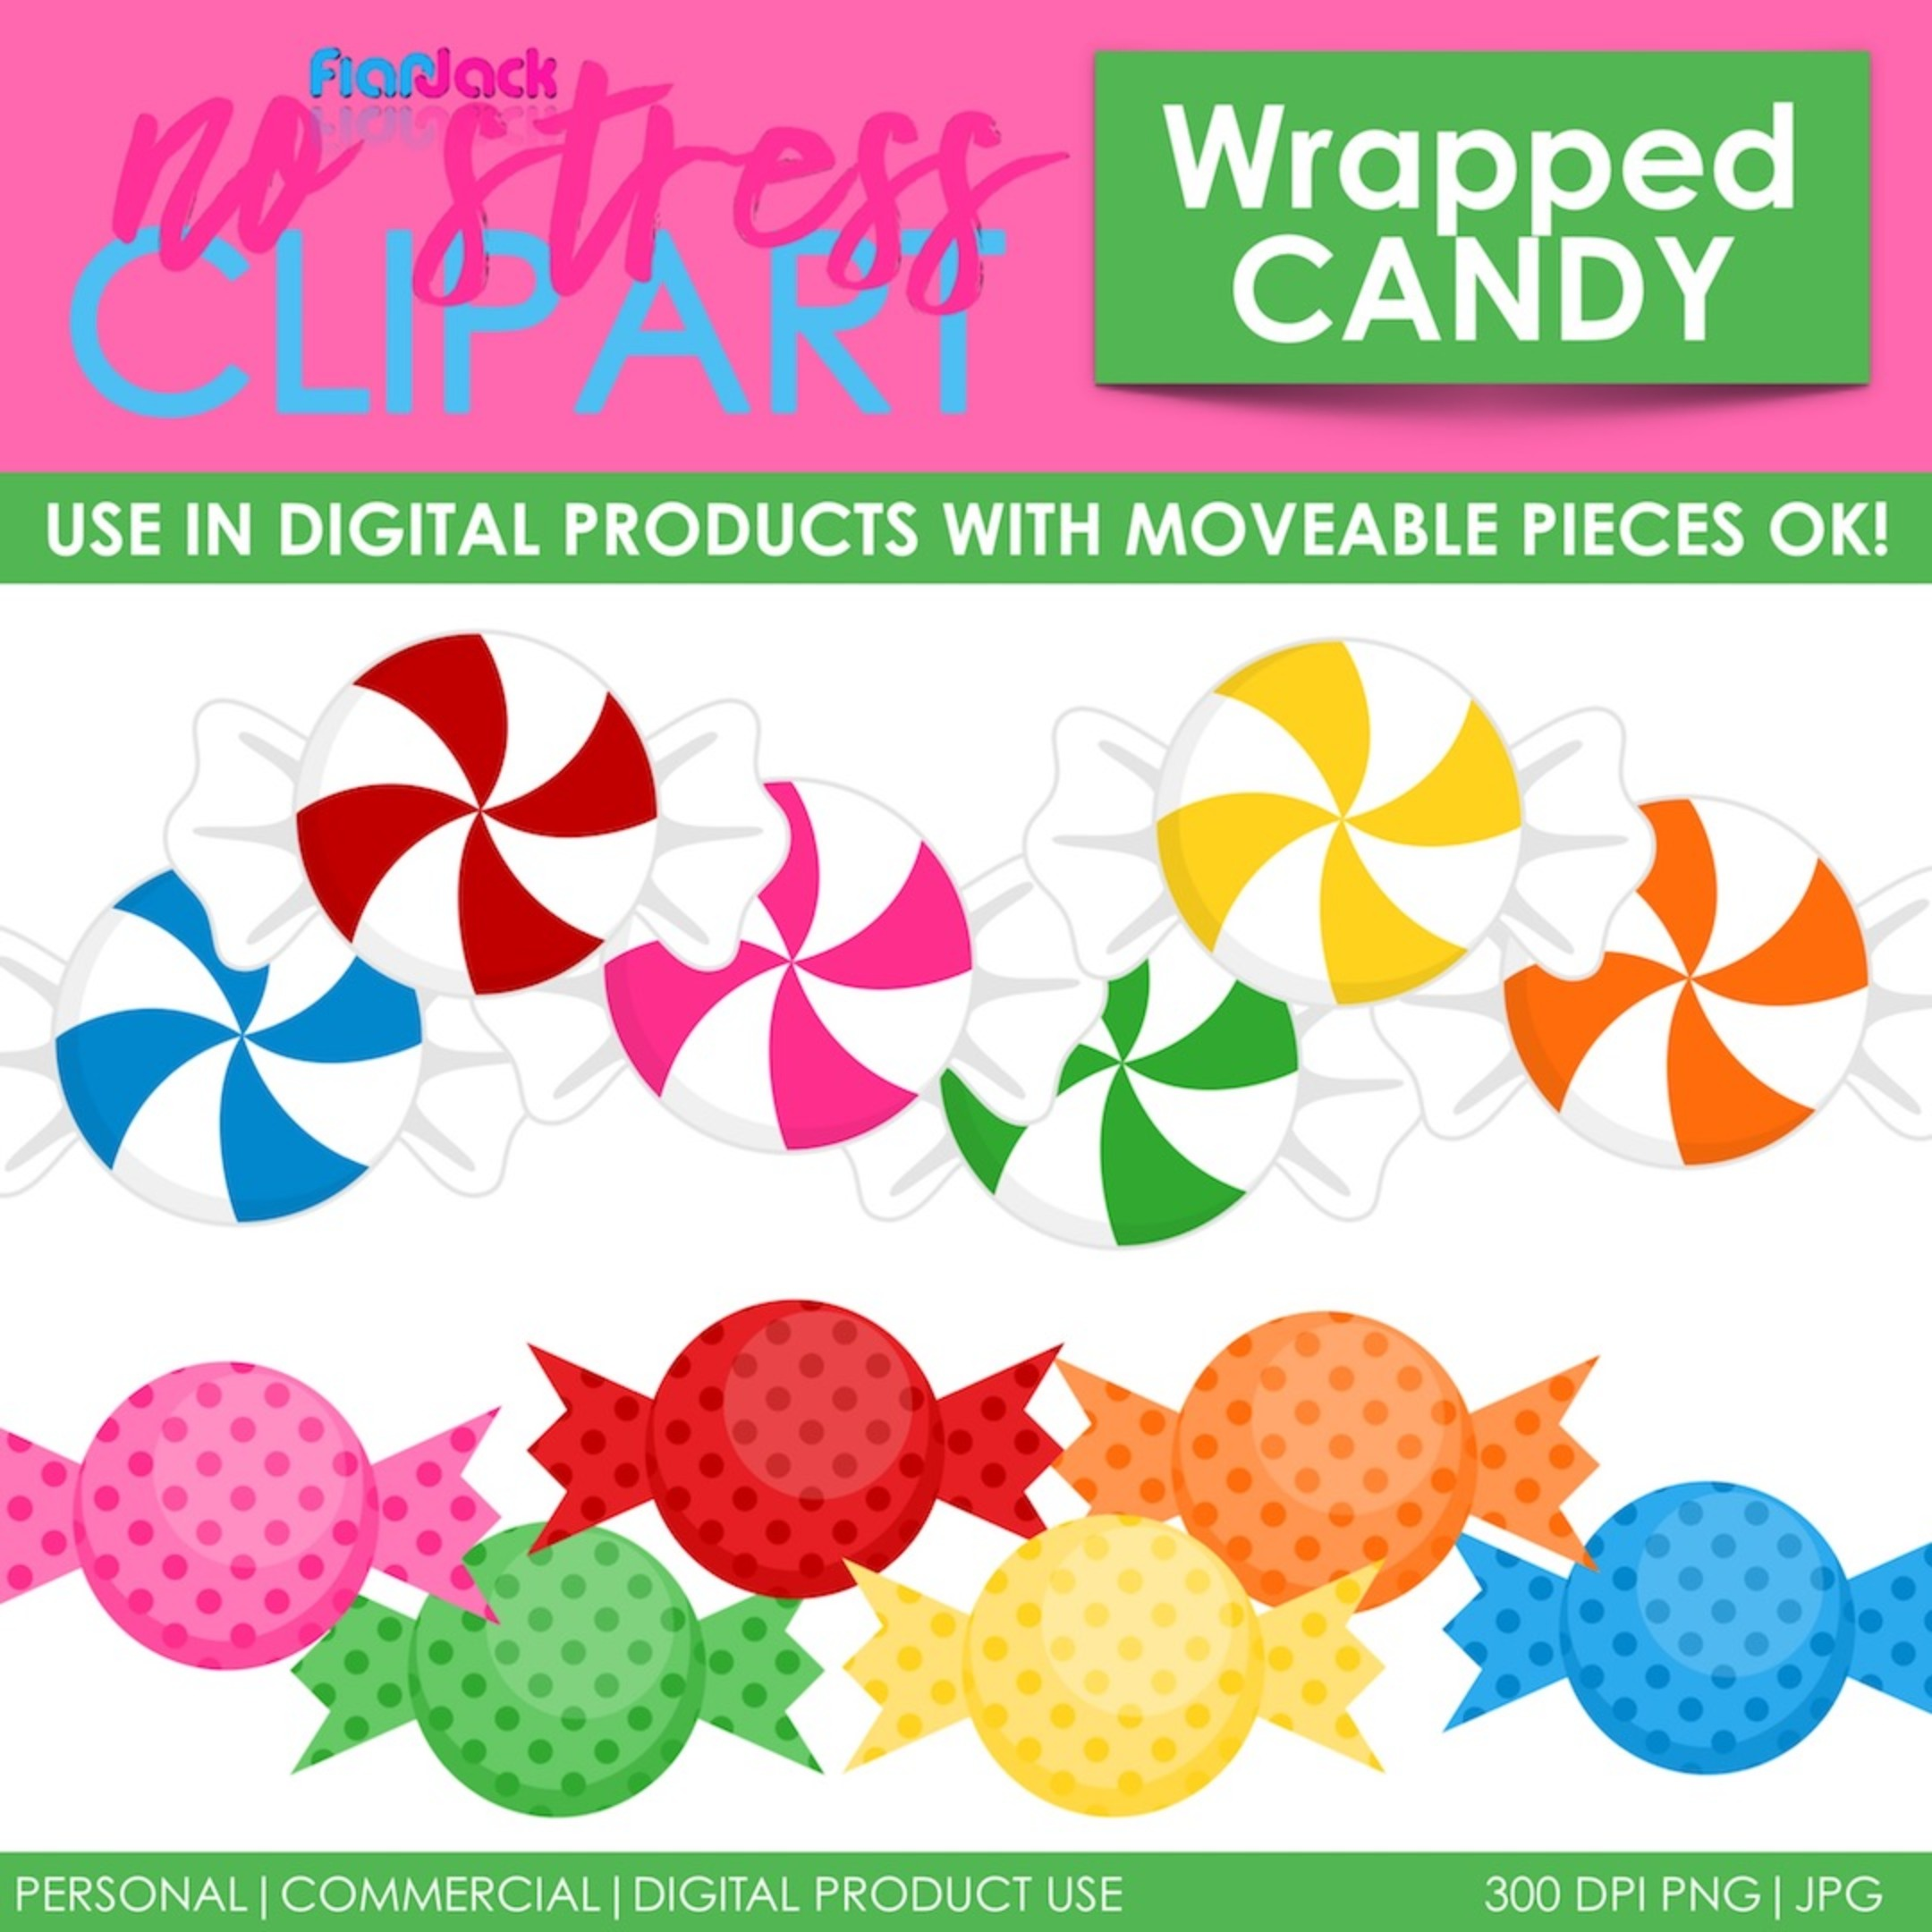 Candy (Wrapped)